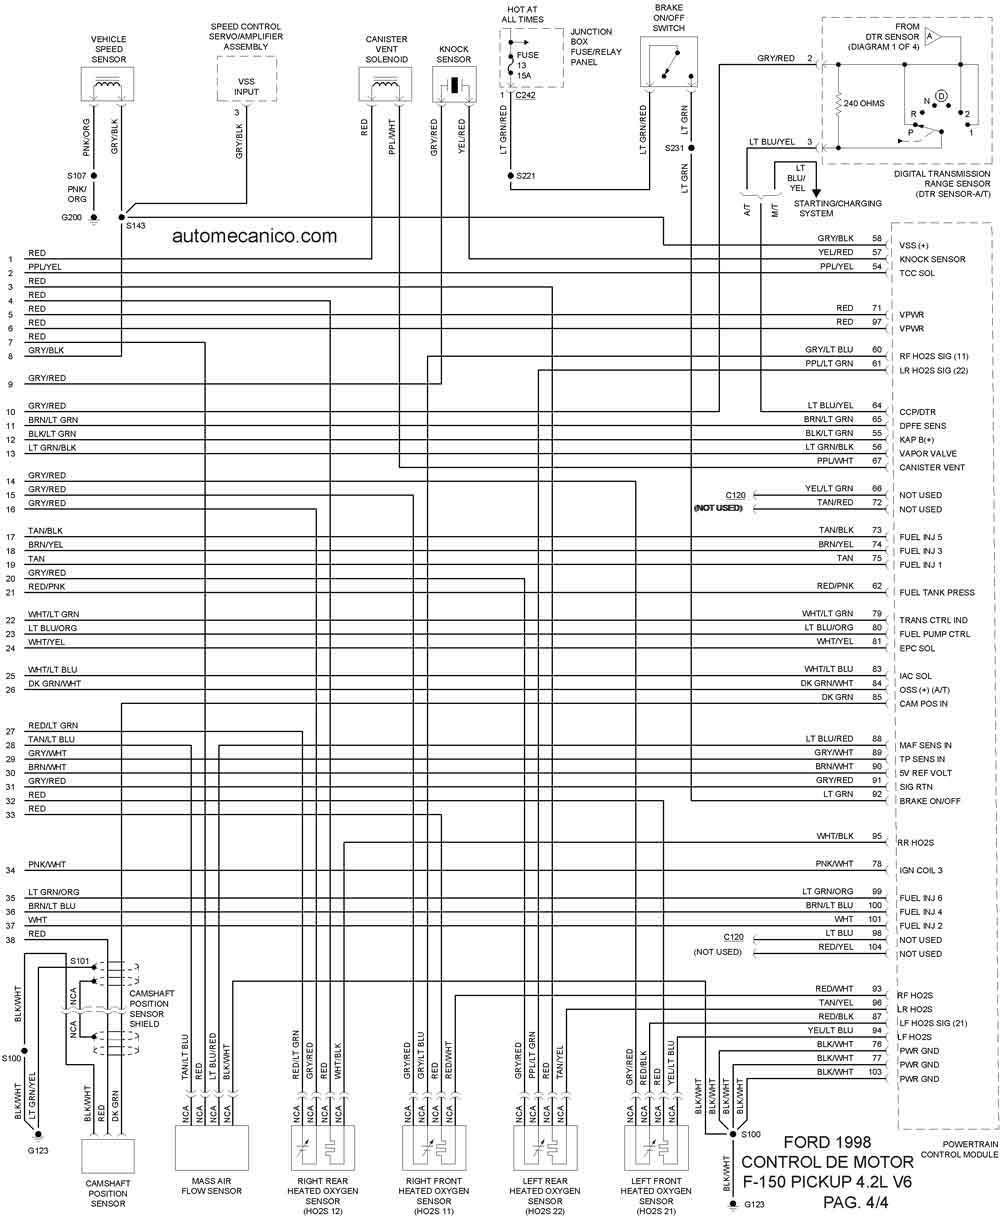 diagrama del los fusibles de f150 97 html autos weblog 2001 Ford Windstar  Fuse Panel 2000 Ford Windstar Fuse Box Location